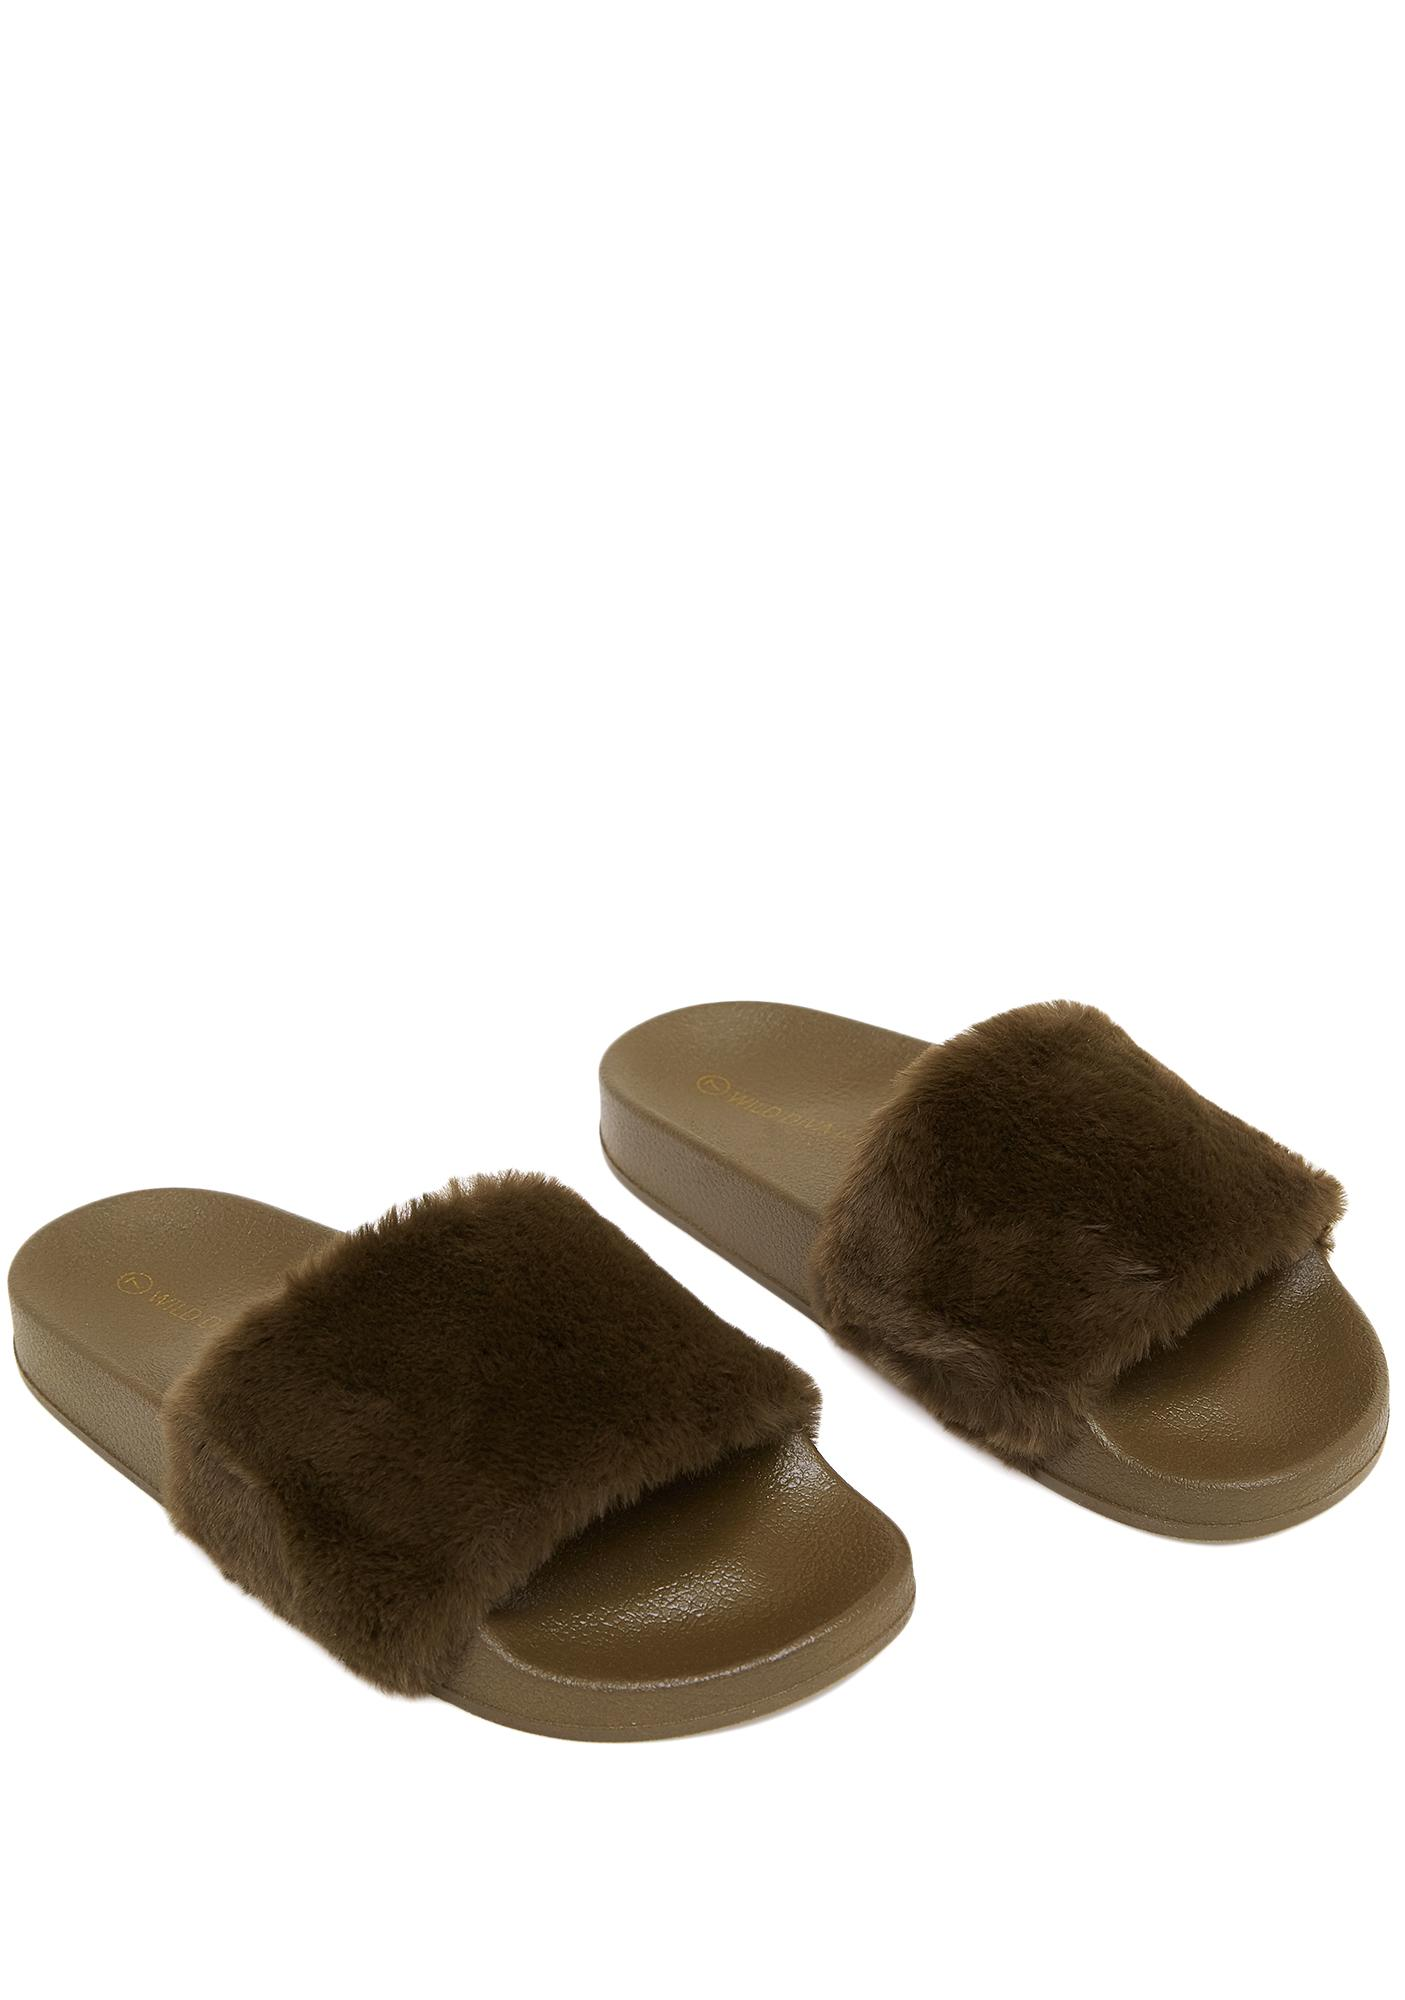 Olive Feelin' Fuzzy Slides